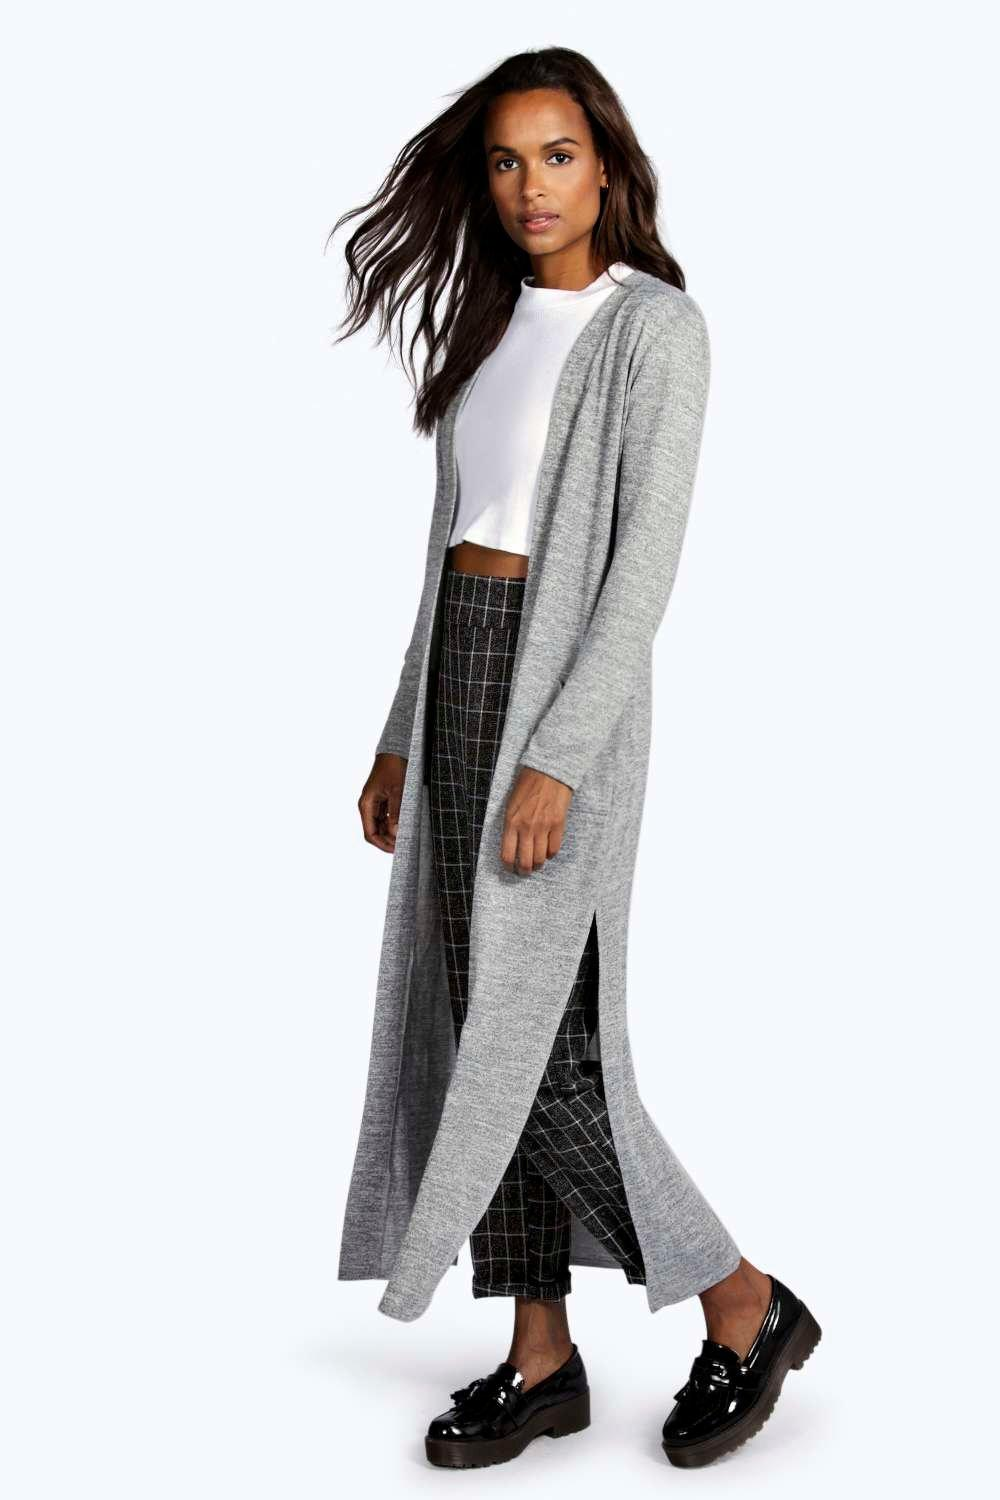 If you prefer, you can also pick up a cropped version that hits at the waist.